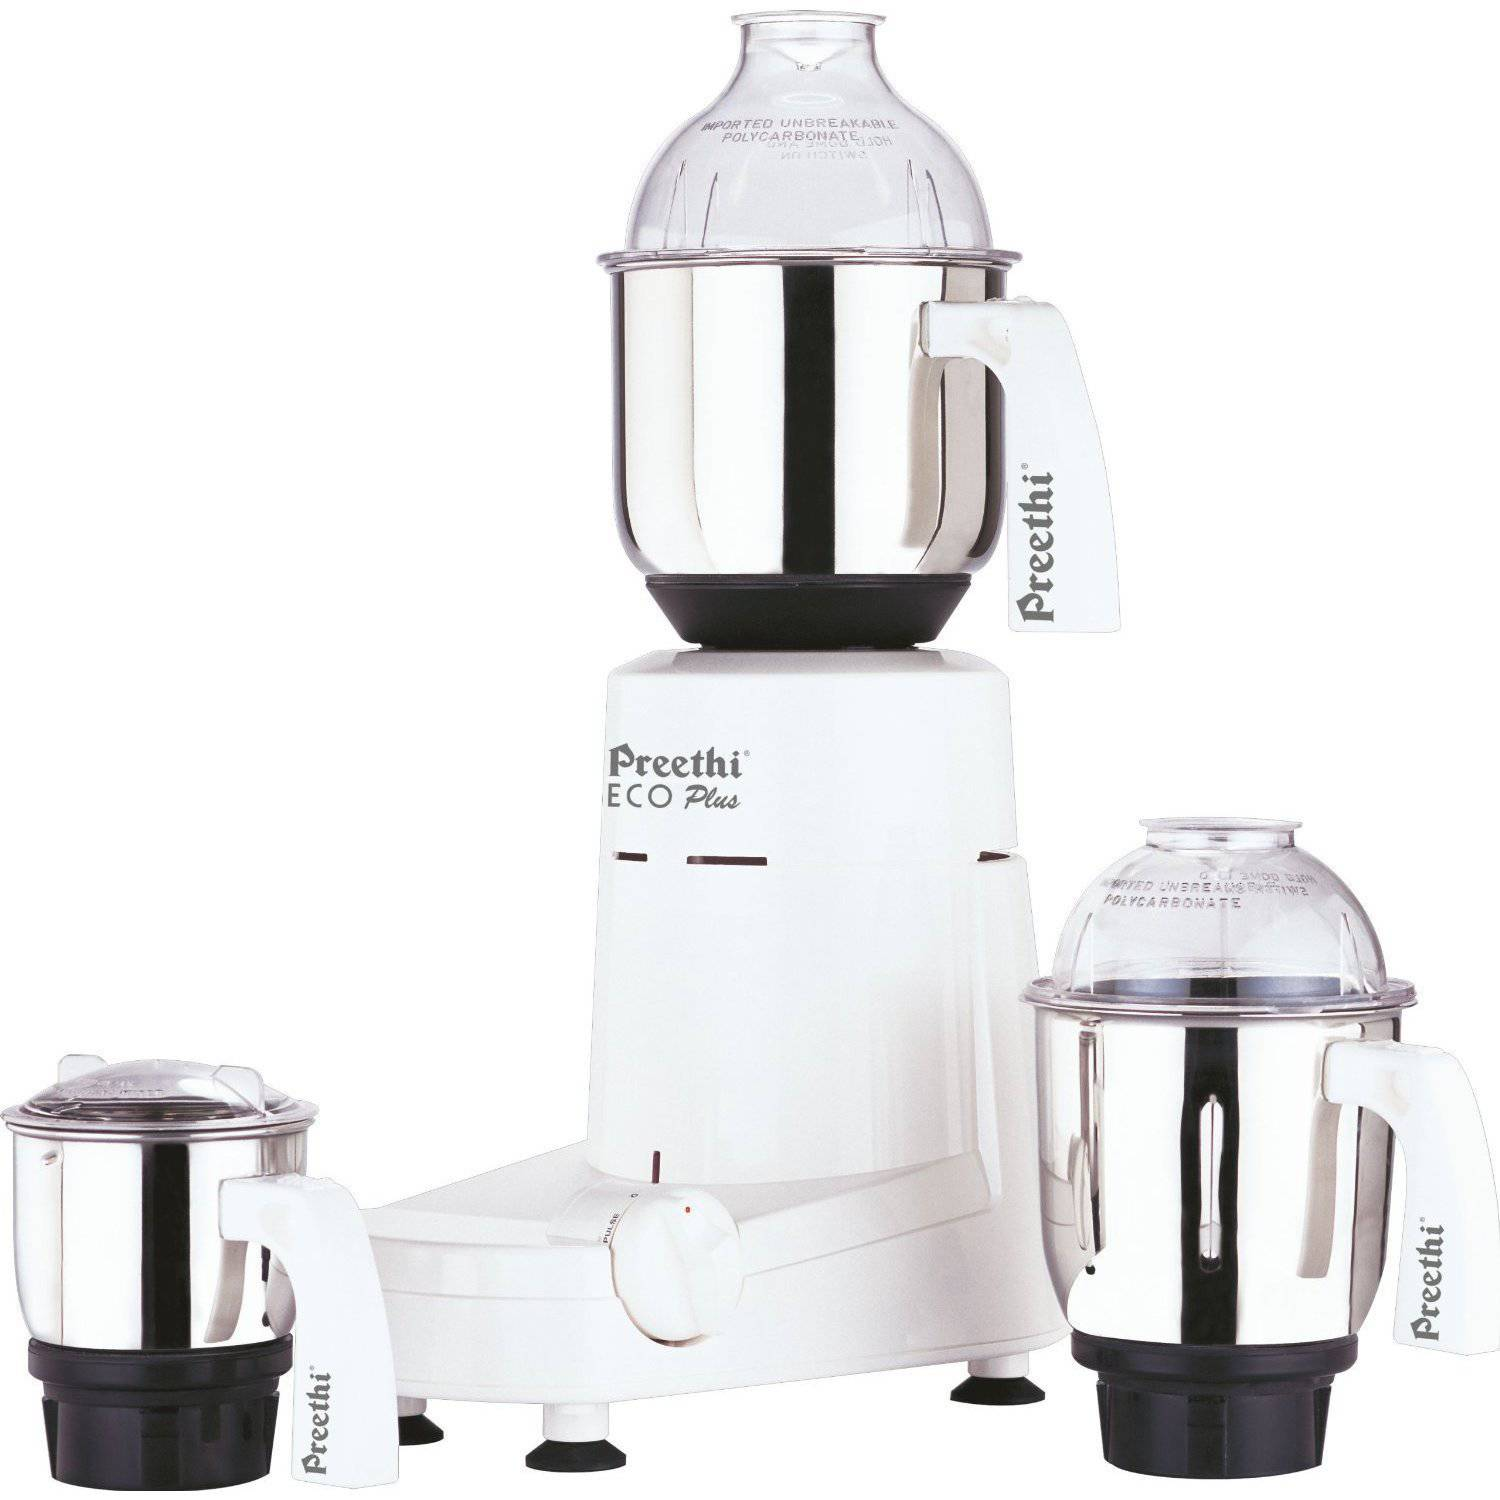 Preethi Eco Plus Mixer Grinder, 110-Volts